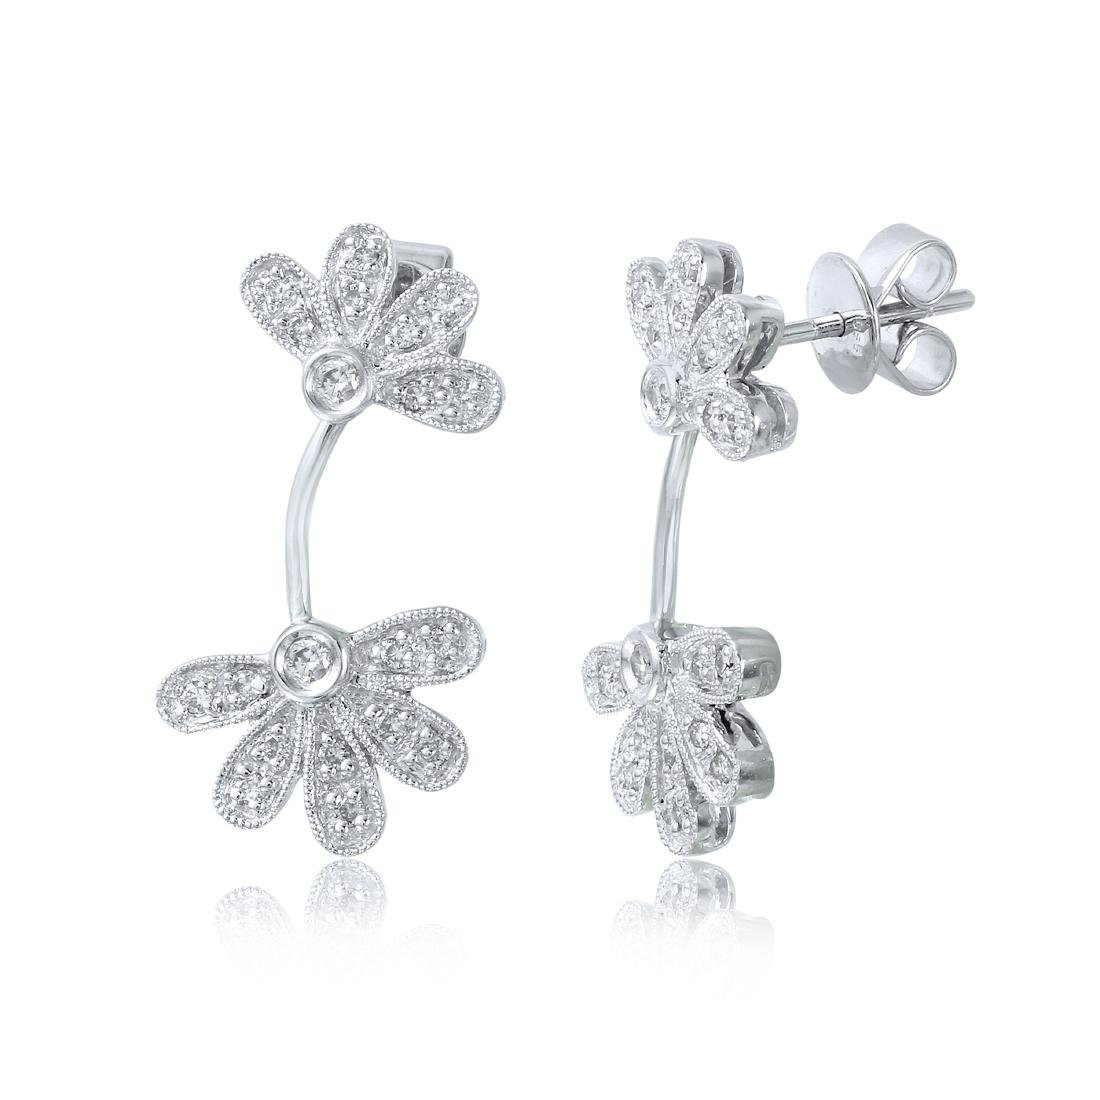 14KT White Gold Diamond Flower Earrings